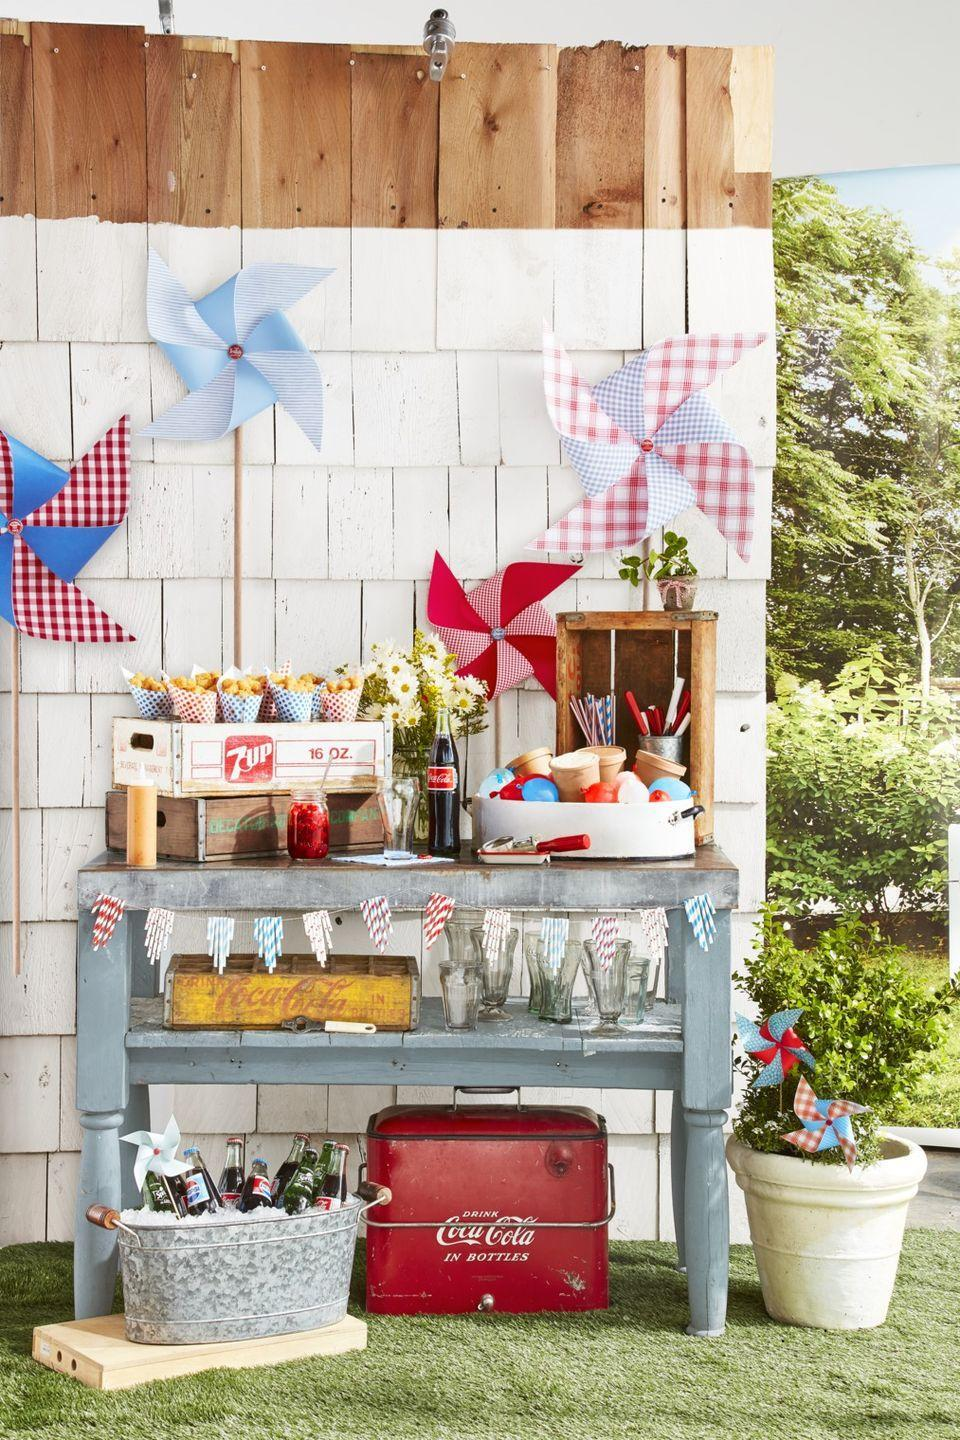 """<p><em>Country Living</em> contributor <a href=""""https://www.countryliving.com/life/entertainment/a27008740/thomas-rhett-lauren-akins-kids/"""" rel=""""nofollow noopener"""" target=""""_blank"""" data-ylk=""""slk:Lauren Akins"""" class=""""link rapid-noclick-resp"""">Lauren Akins</a> helped dream up this genius summer idea, which is perfect for fending off the July heat and keeping your crew refreshed. Channel the 4th of July from decades past with glass soda bottles and a vintage-inspired bar cart. </p><p><a class=""""link rapid-noclick-resp"""" href=""""https://www.amazon.com/TableCrafts-CC322-Coca-Cola-Glass-Dispenser/dp/B000GDMAZ4/?tag=syn-yahoo-20&ascsubtag=%5Bartid%7C10050.g.4463%5Bsrc%7Cyahoo-us"""" rel=""""nofollow noopener"""" target=""""_blank"""" data-ylk=""""slk:SHOP STRAW DISPENSERS"""">SHOP STRAW DISPENSERS</a></p>"""